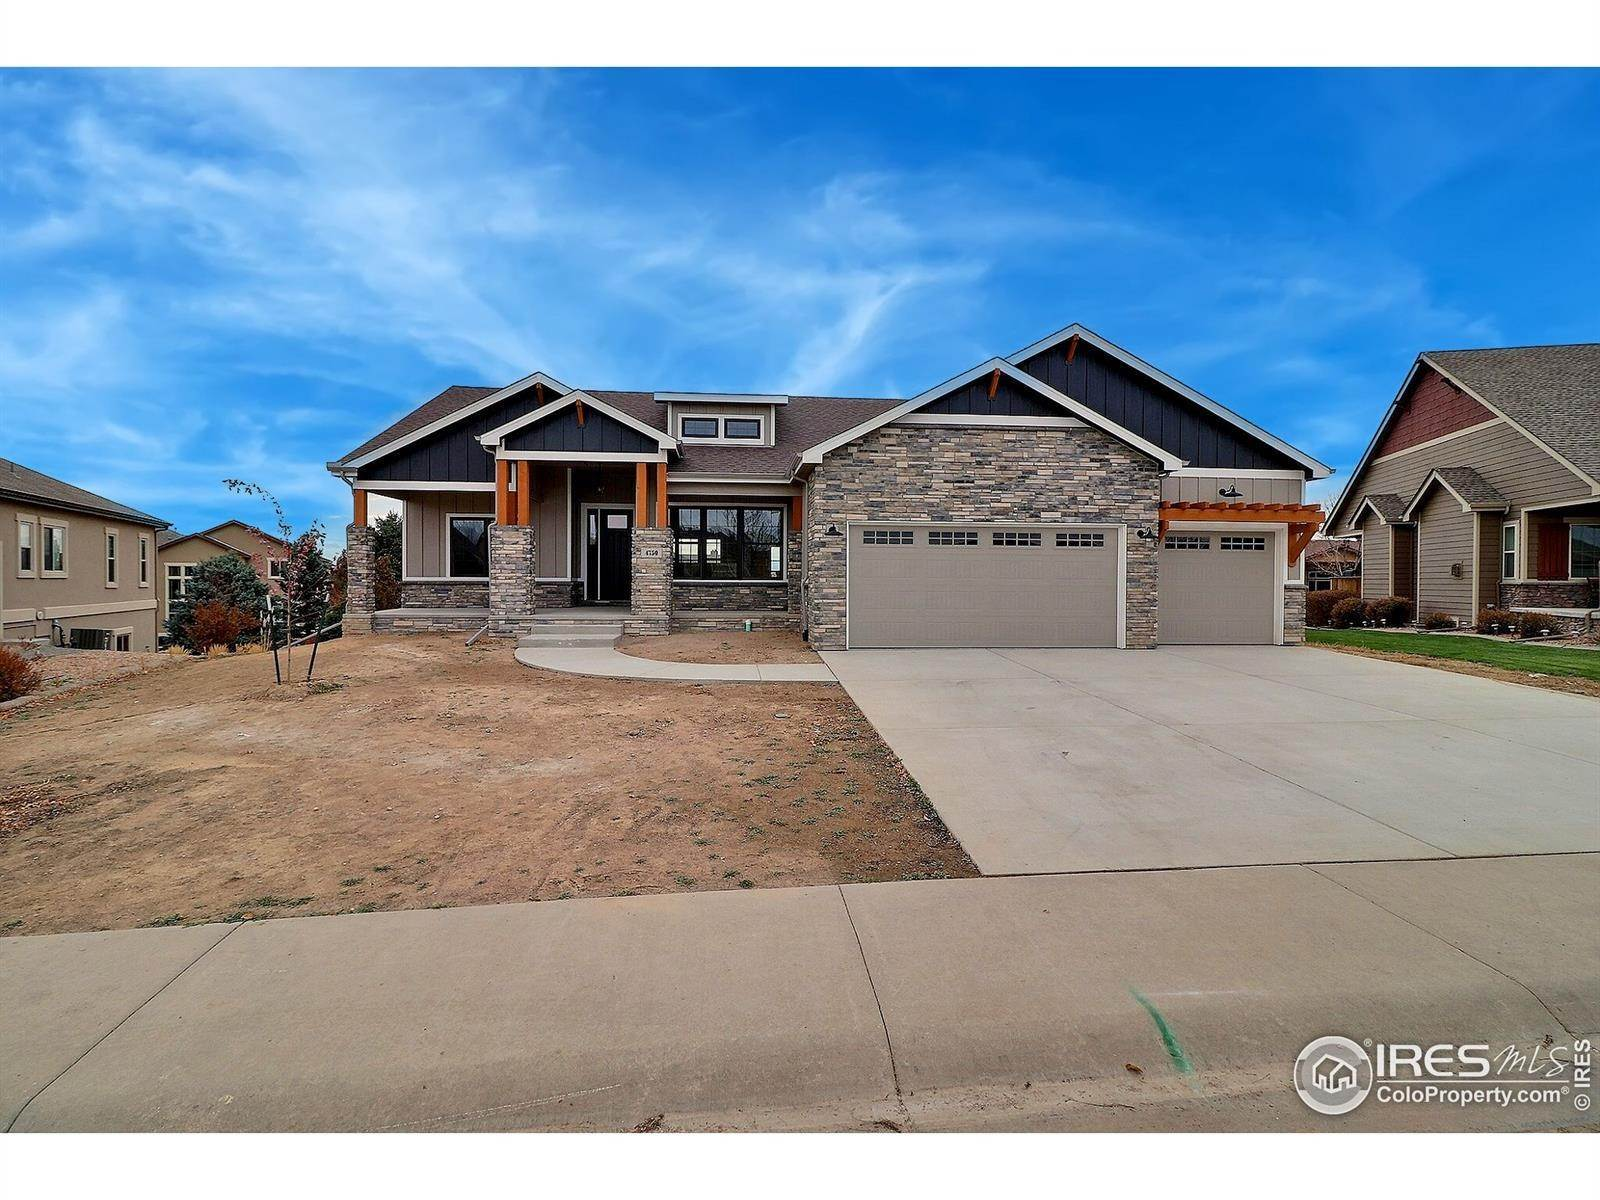 Single Family Homes for Sale at 4750 Sorrel Lane Johnstown, Colorado 80534 United States